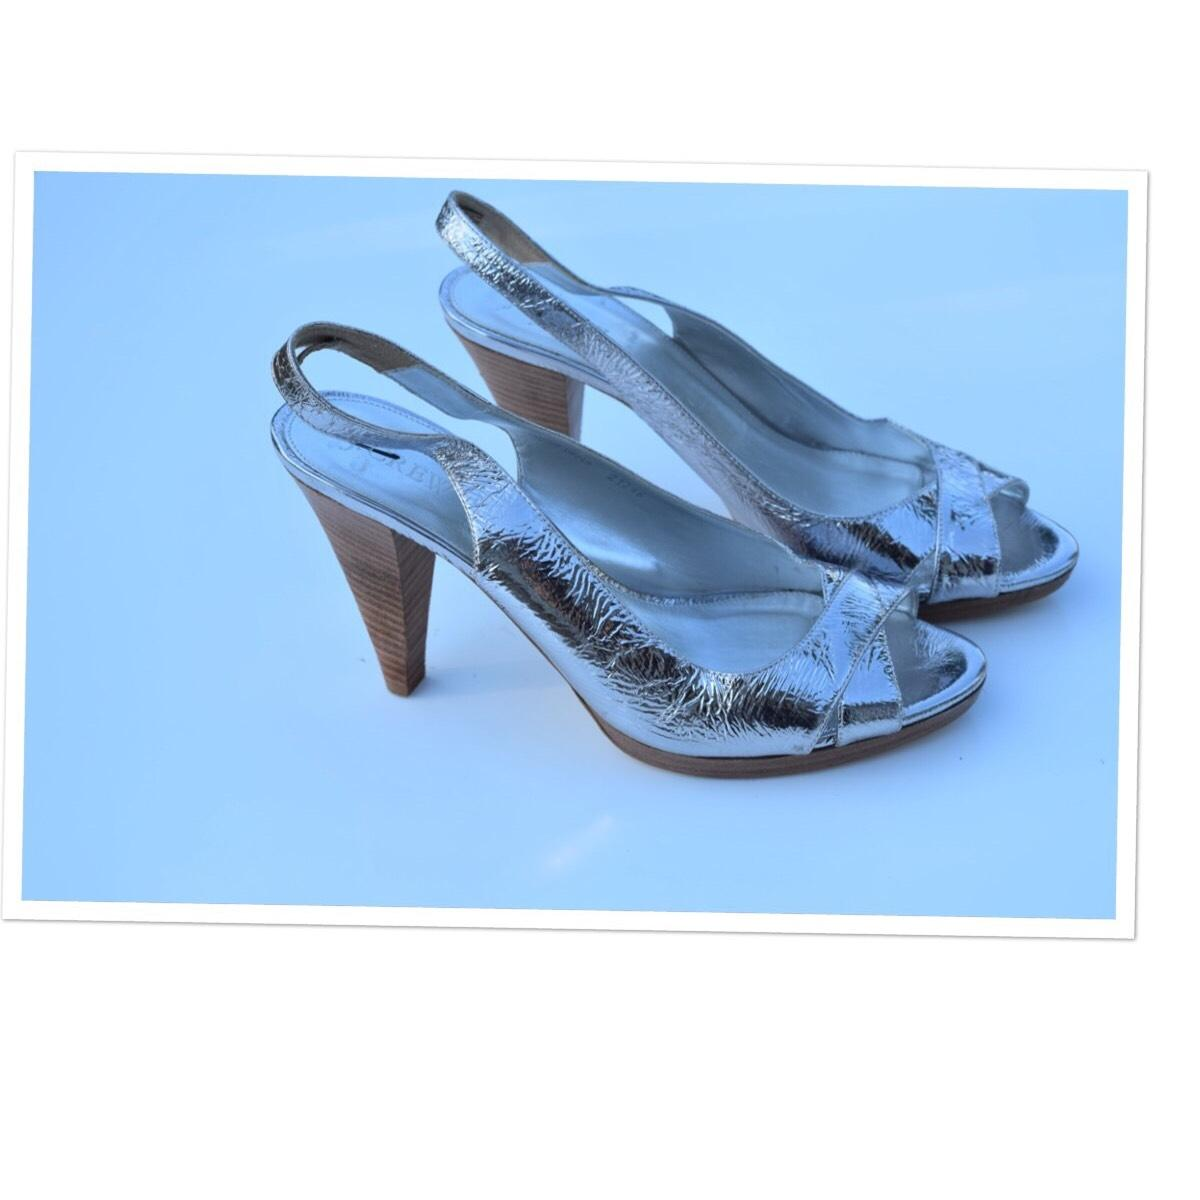 79a9a9bf191 J.Crew Mirrored Mirrored Mirrored Metallic Colette Sling Back Pumps Size US  10 Regular (M